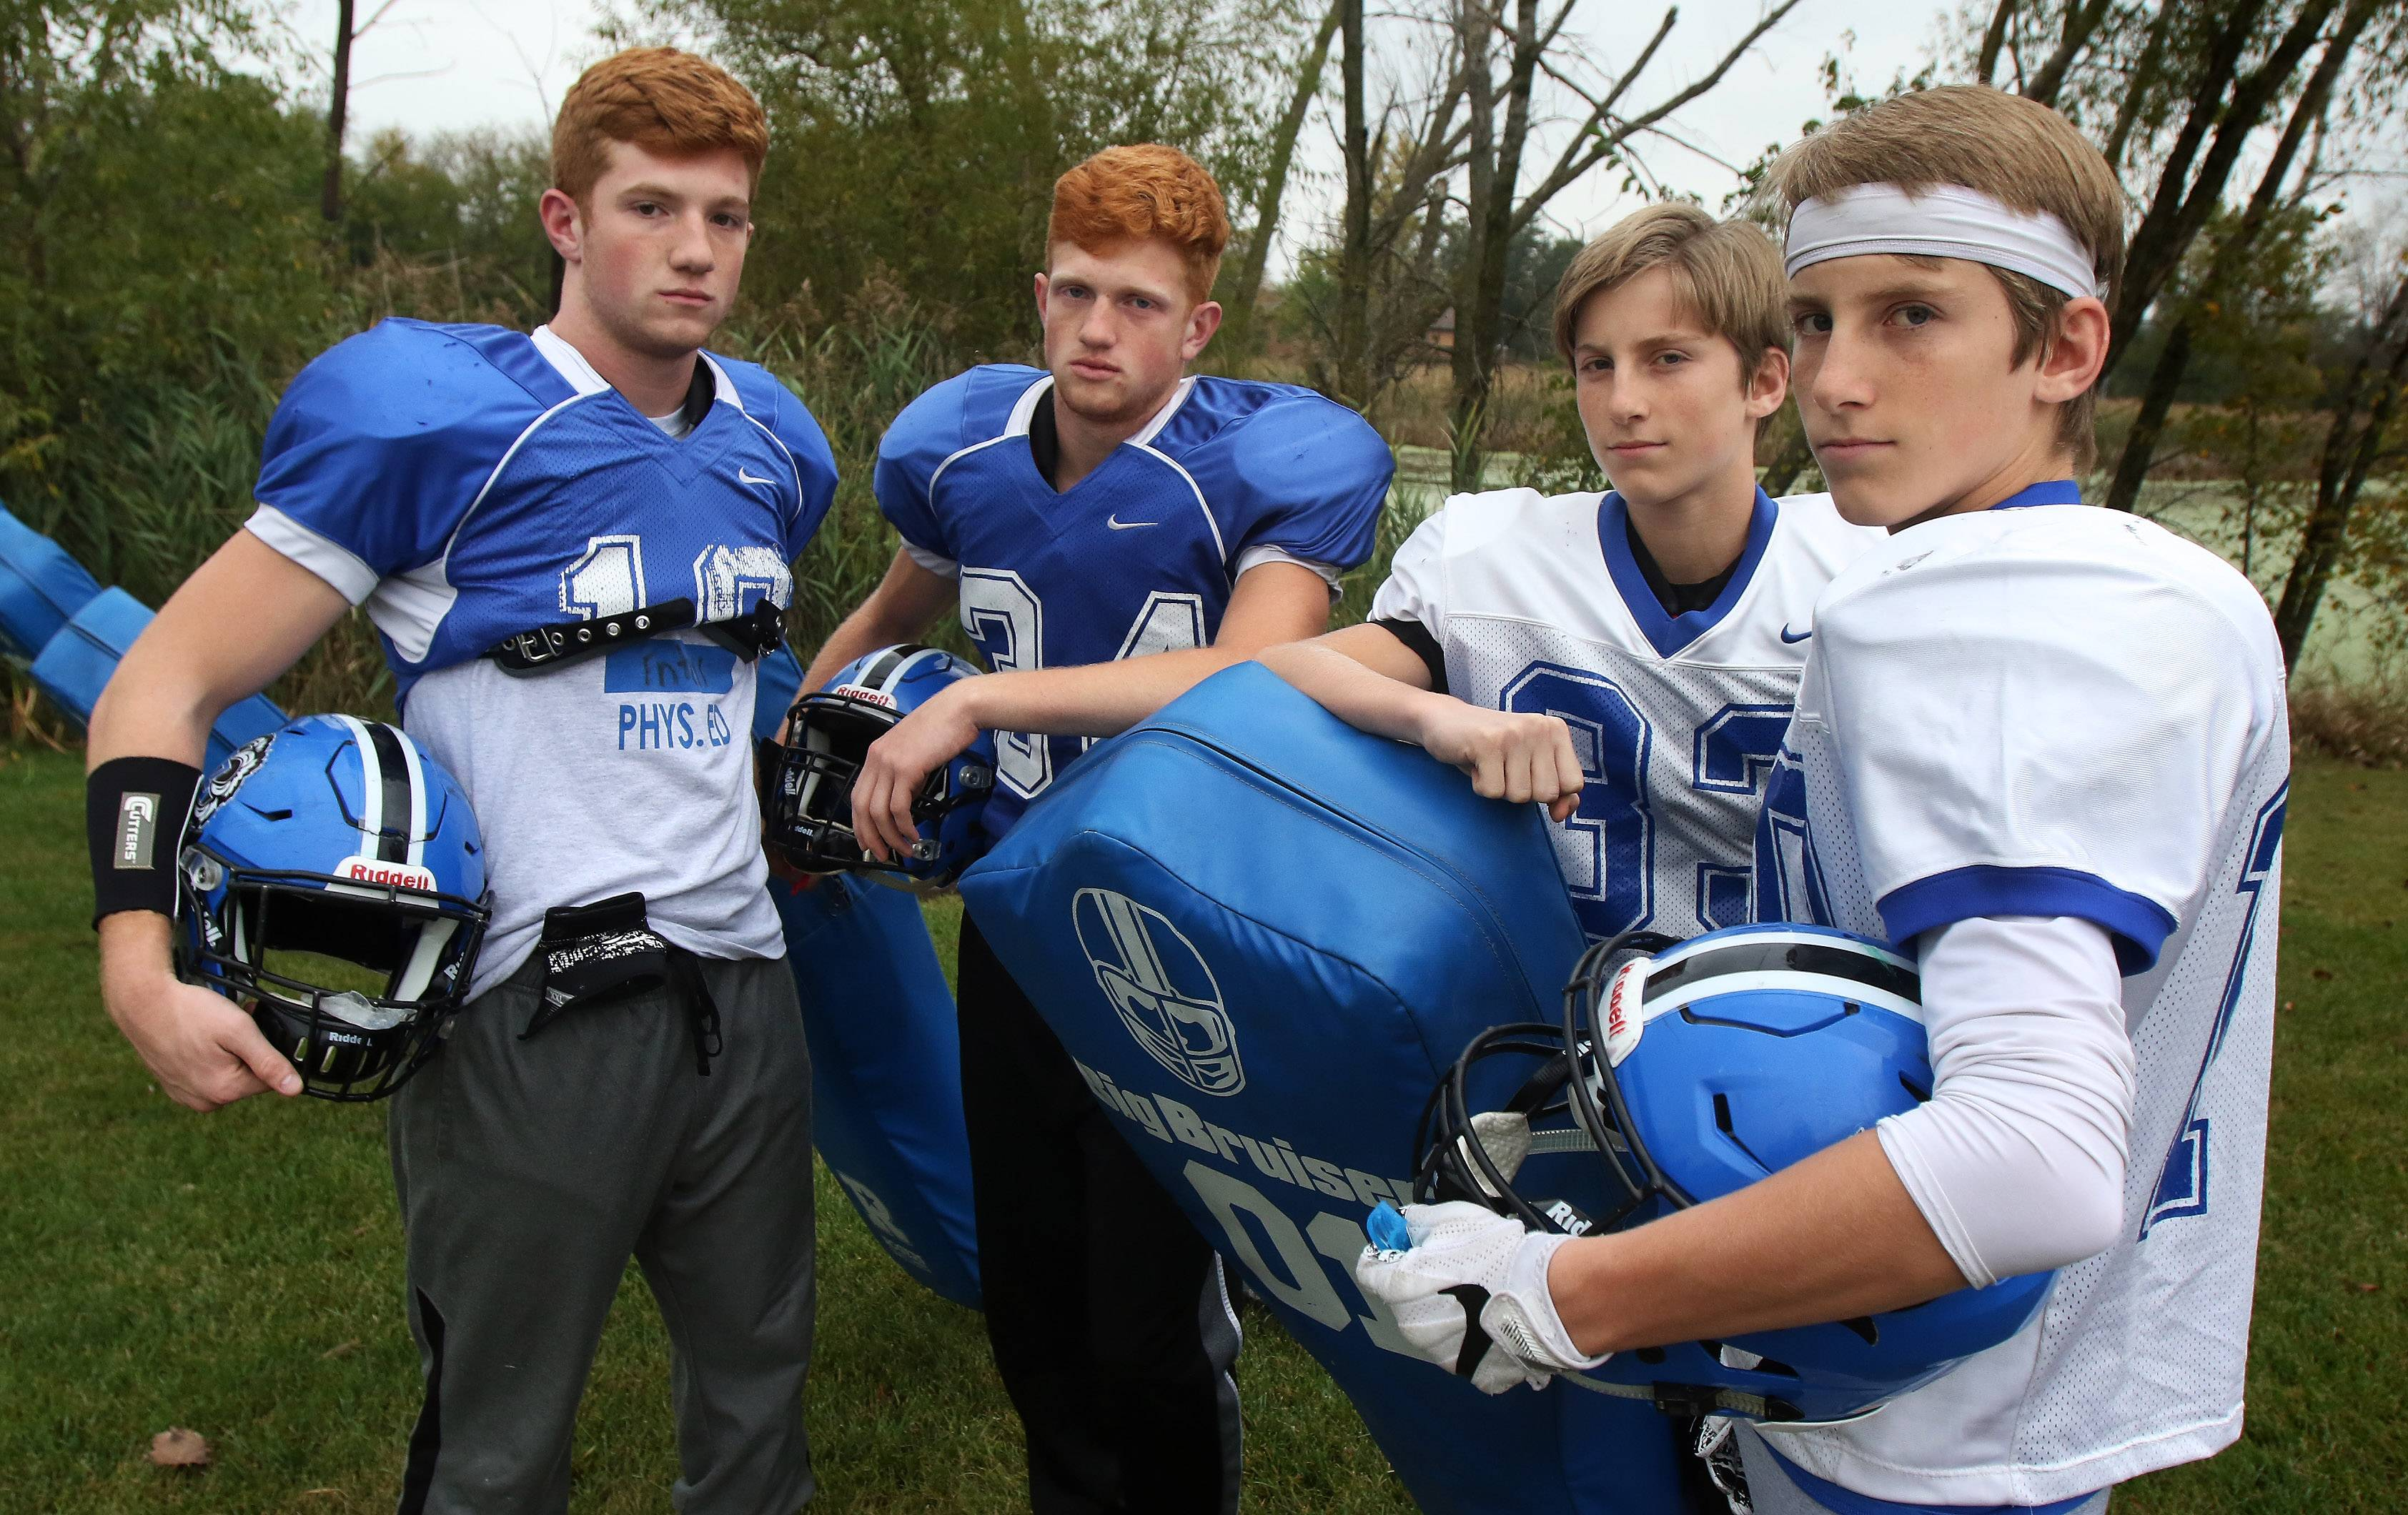 Brothers Matthijs and Marek Enters, left, and twins Jason and Justin Wollard typify the Lake Zurich football program's sense of family and brotherhood.